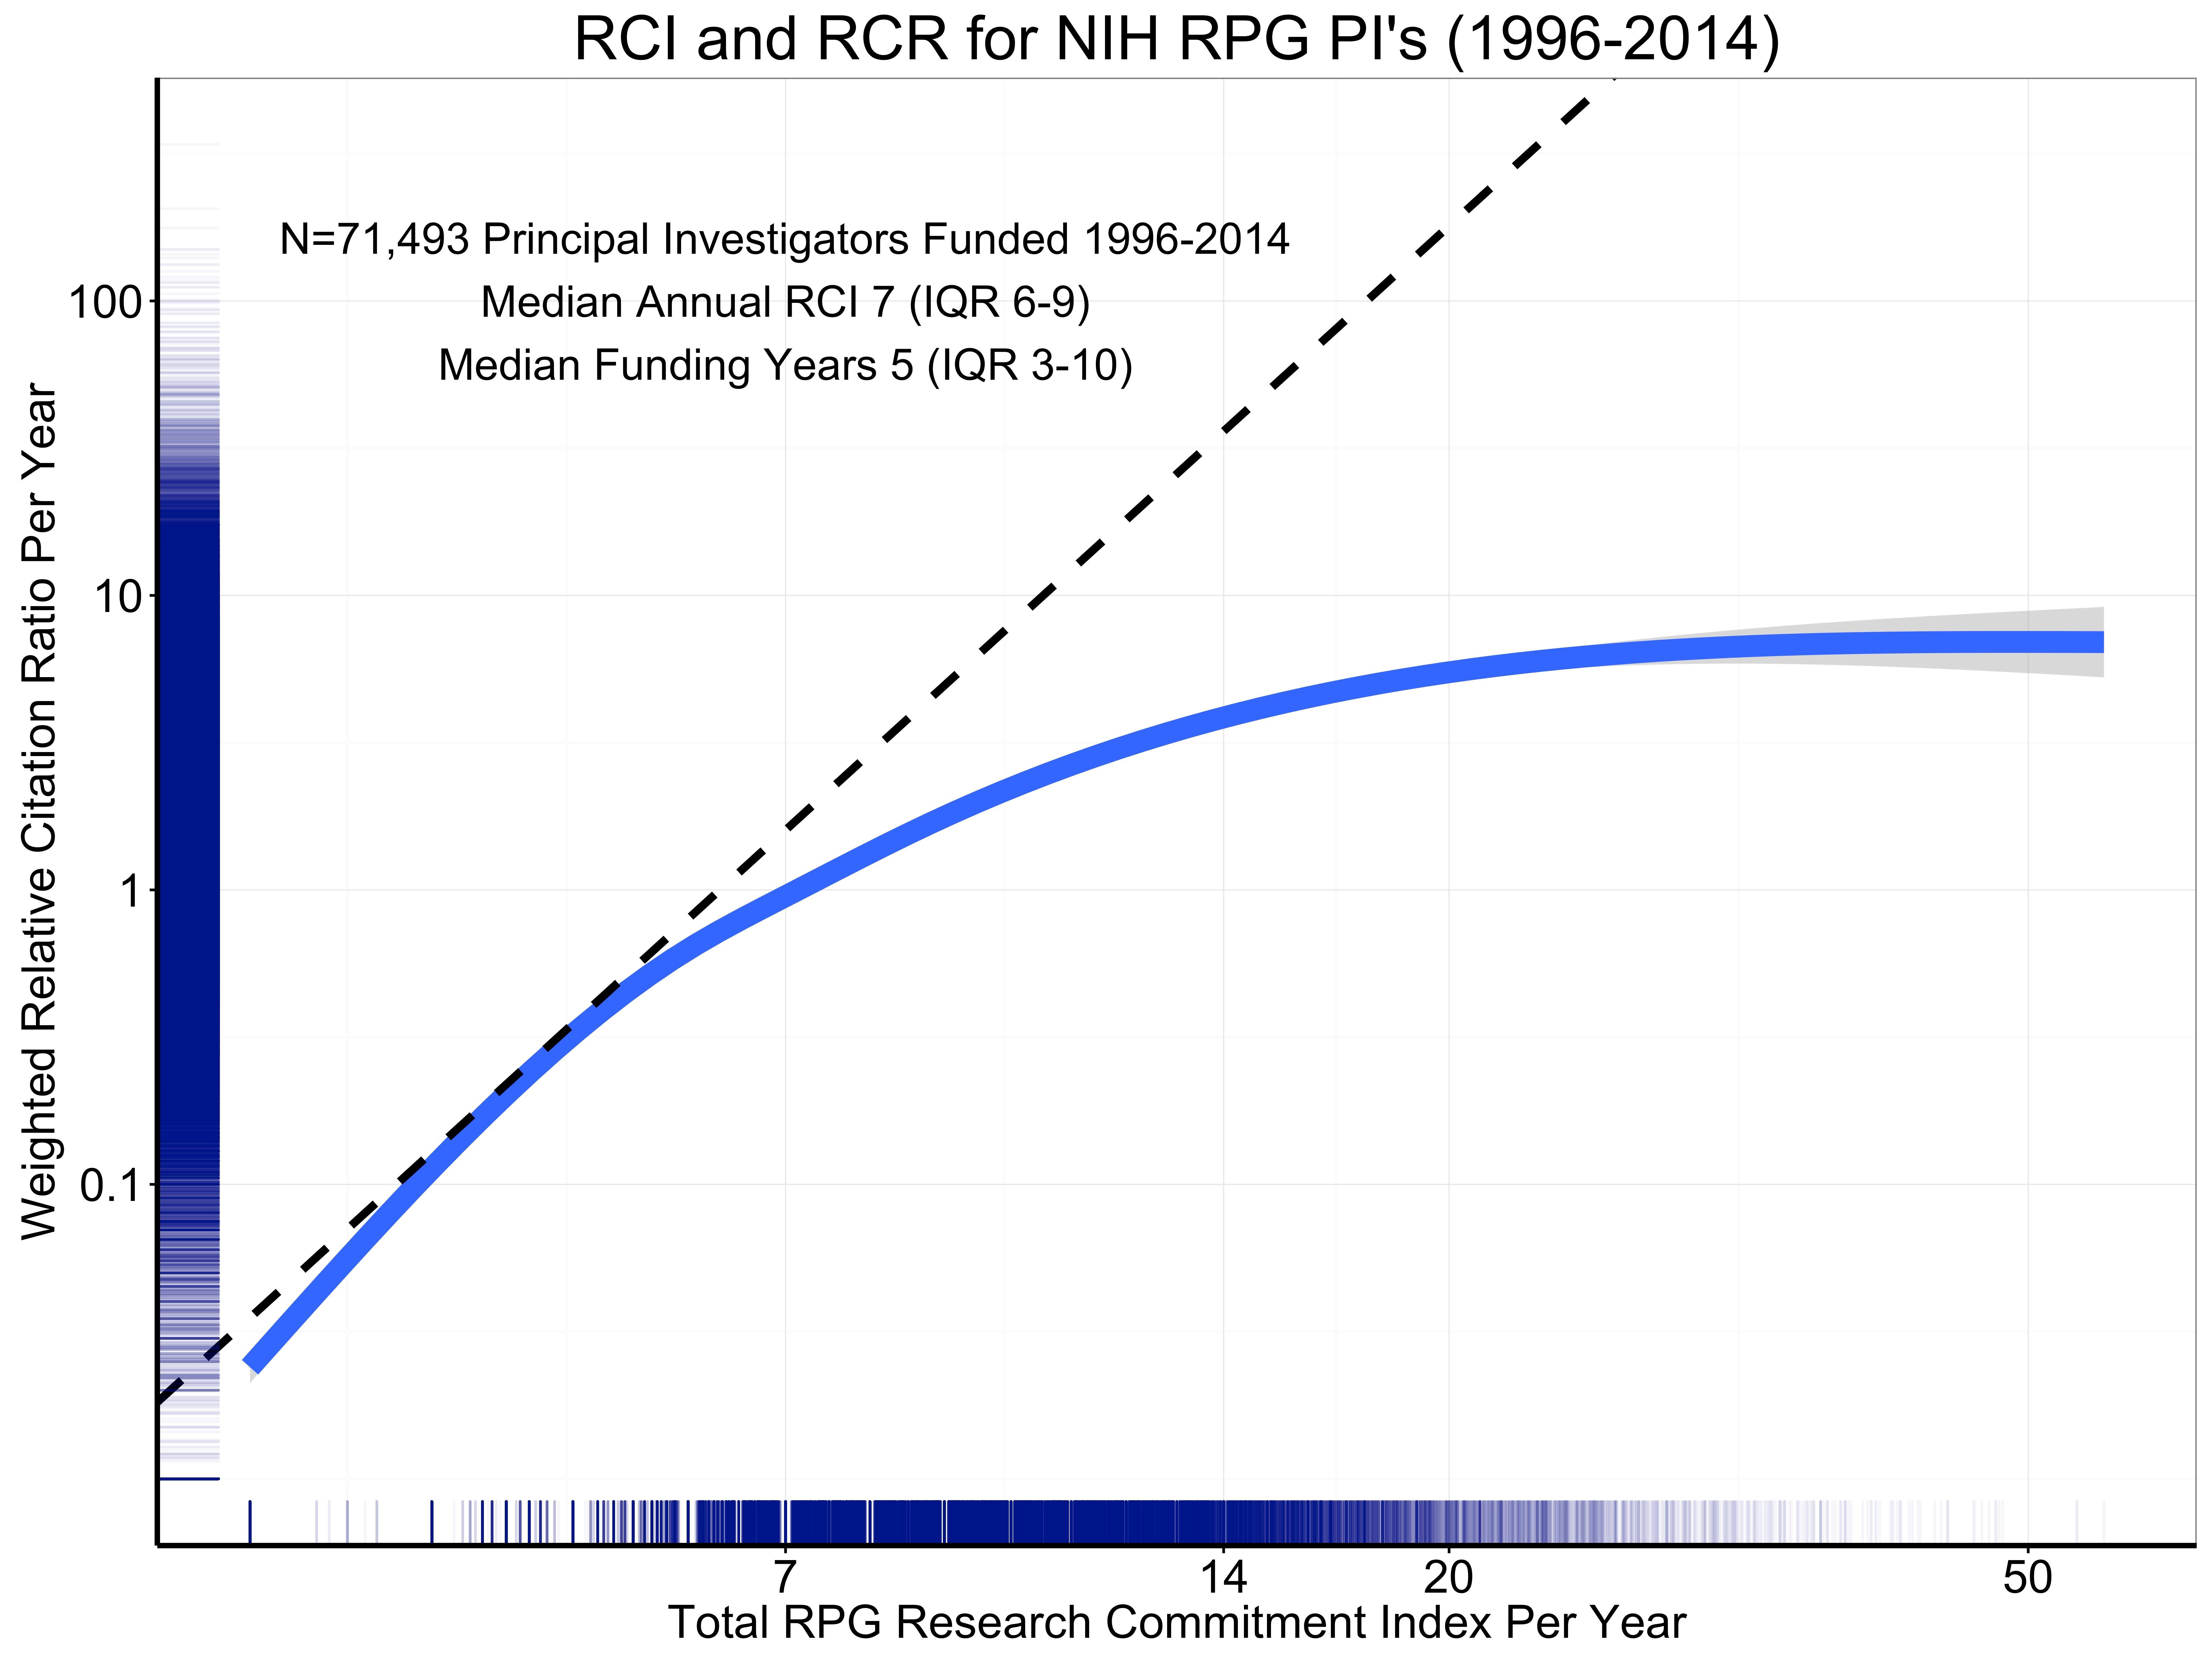 Research Commitment Index A New Tool For Describing Grant Support Logic 7 Amp Diagram Figure 5 Shows The Association Of As Measured By Rpg Rci Per Year